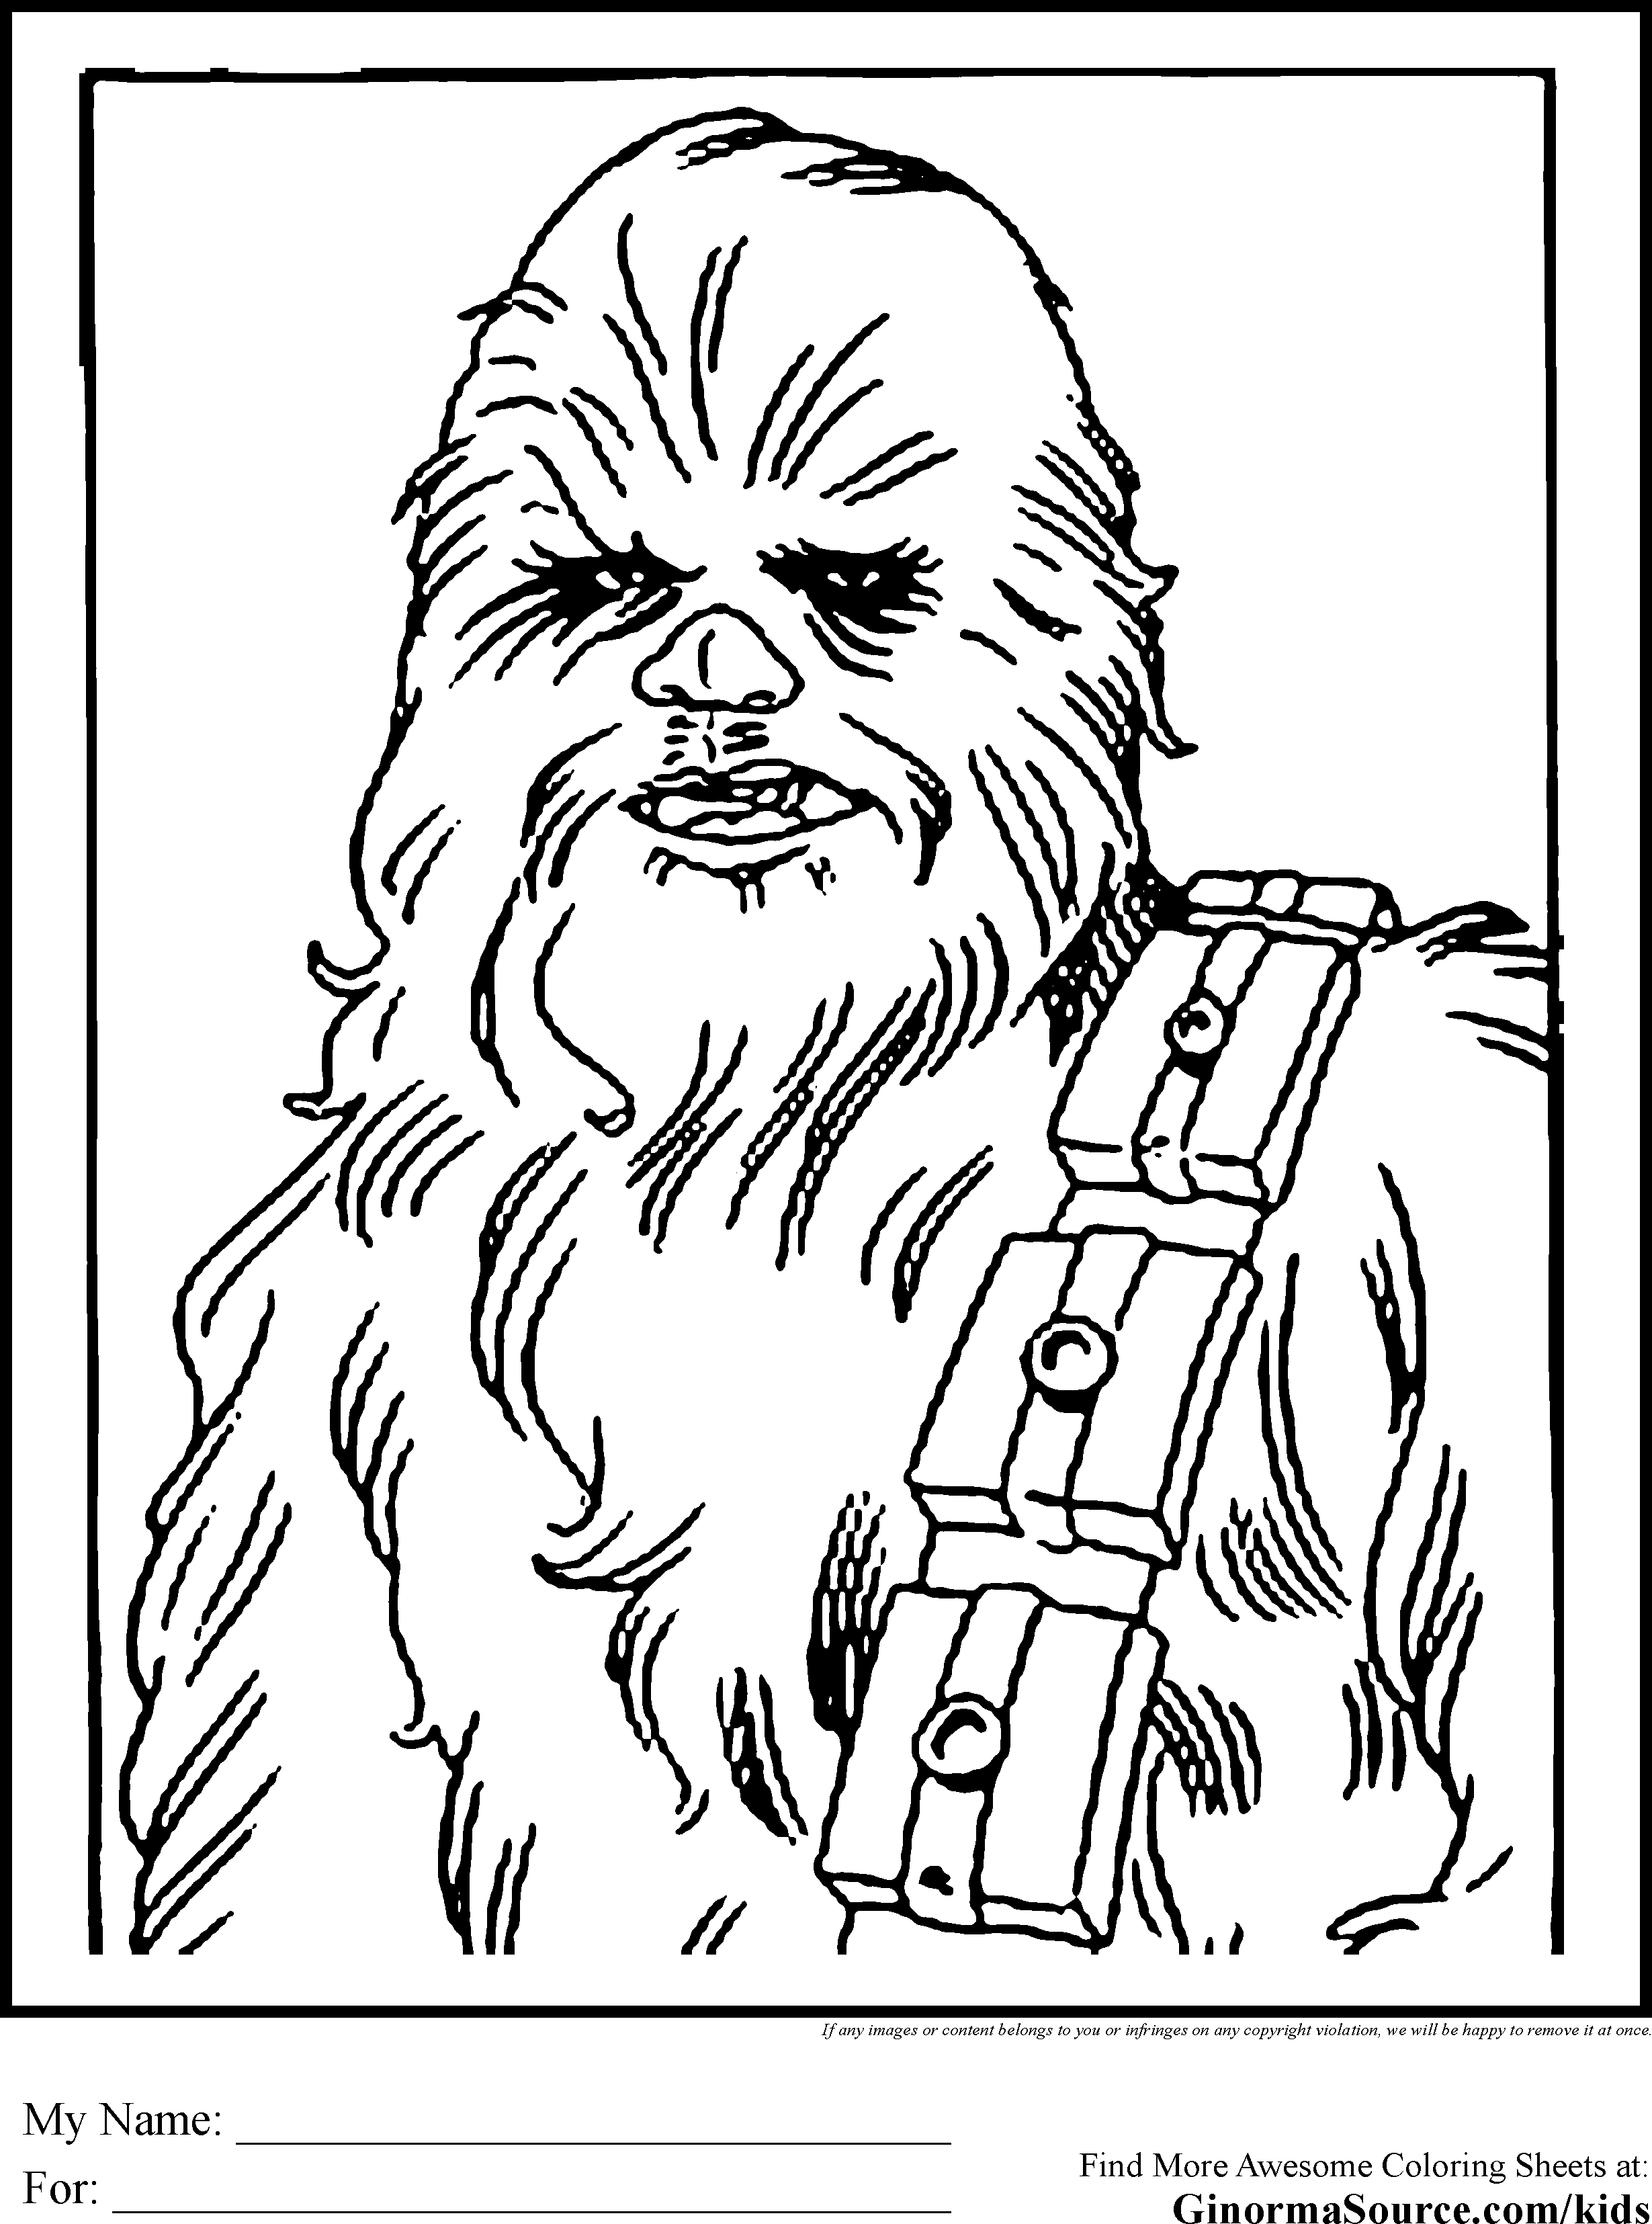 ewok coloring pages the best free ewok coloring page images download from 57 coloring pages ewok